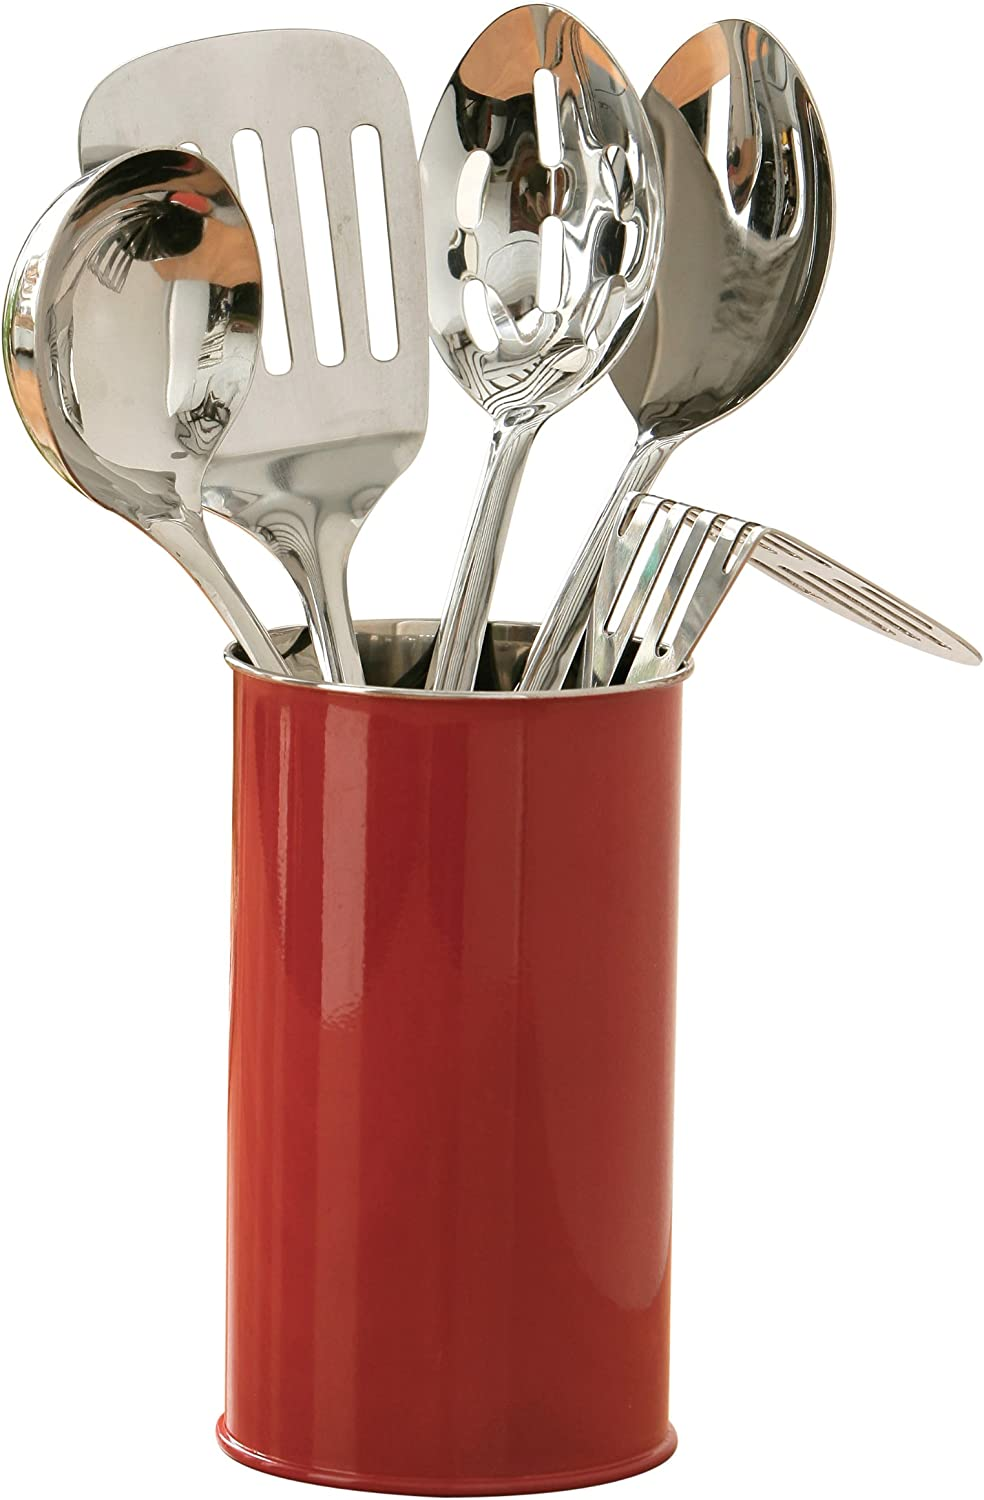 Red 5-Piece Premier Housewares Kitchen Tool Set with Canister